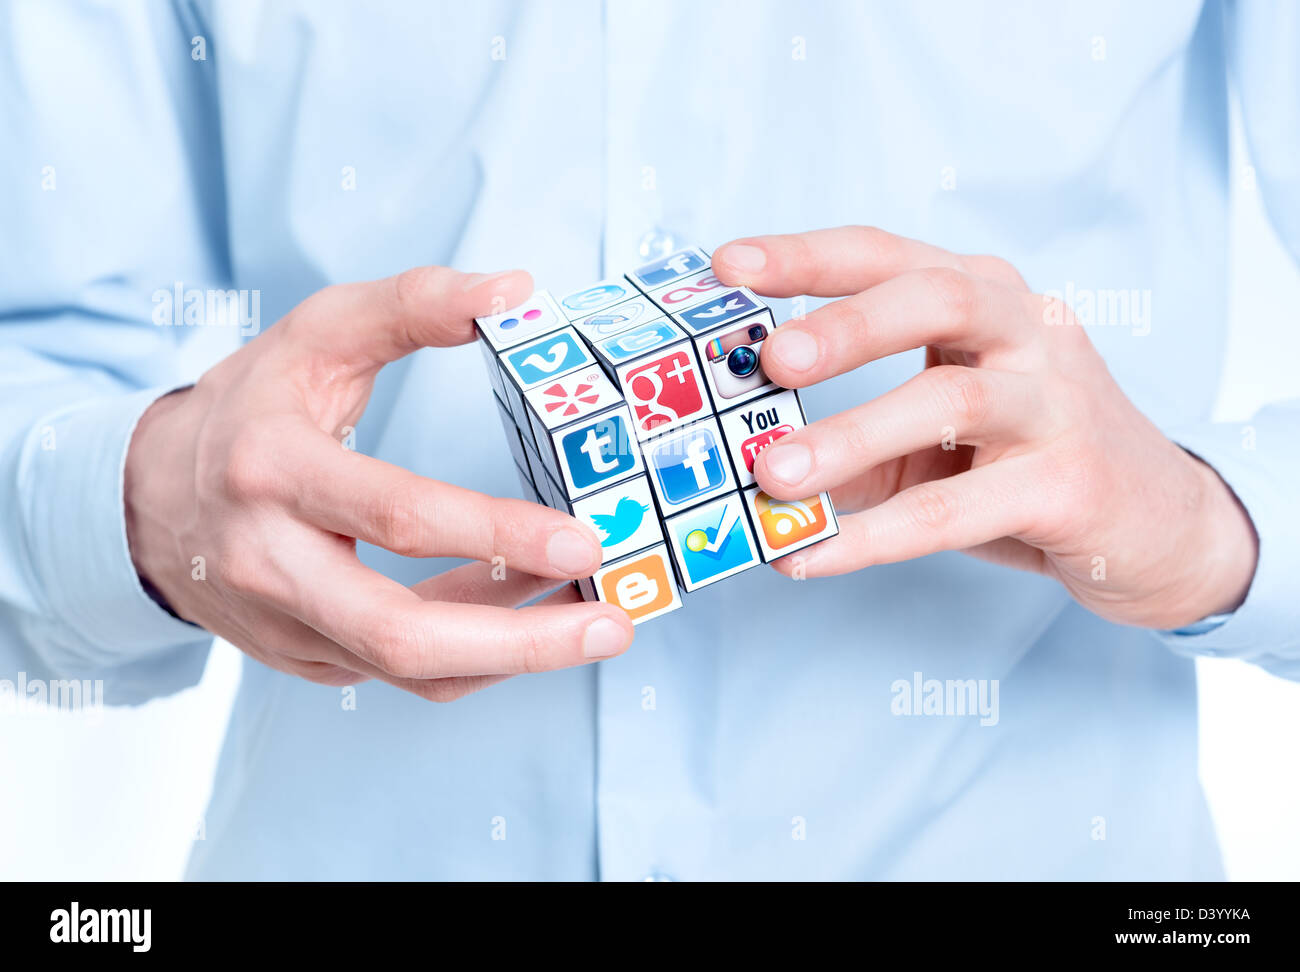 Businessman solving rubik's cube with logotypes of well-known social media brand's. - Stock Image